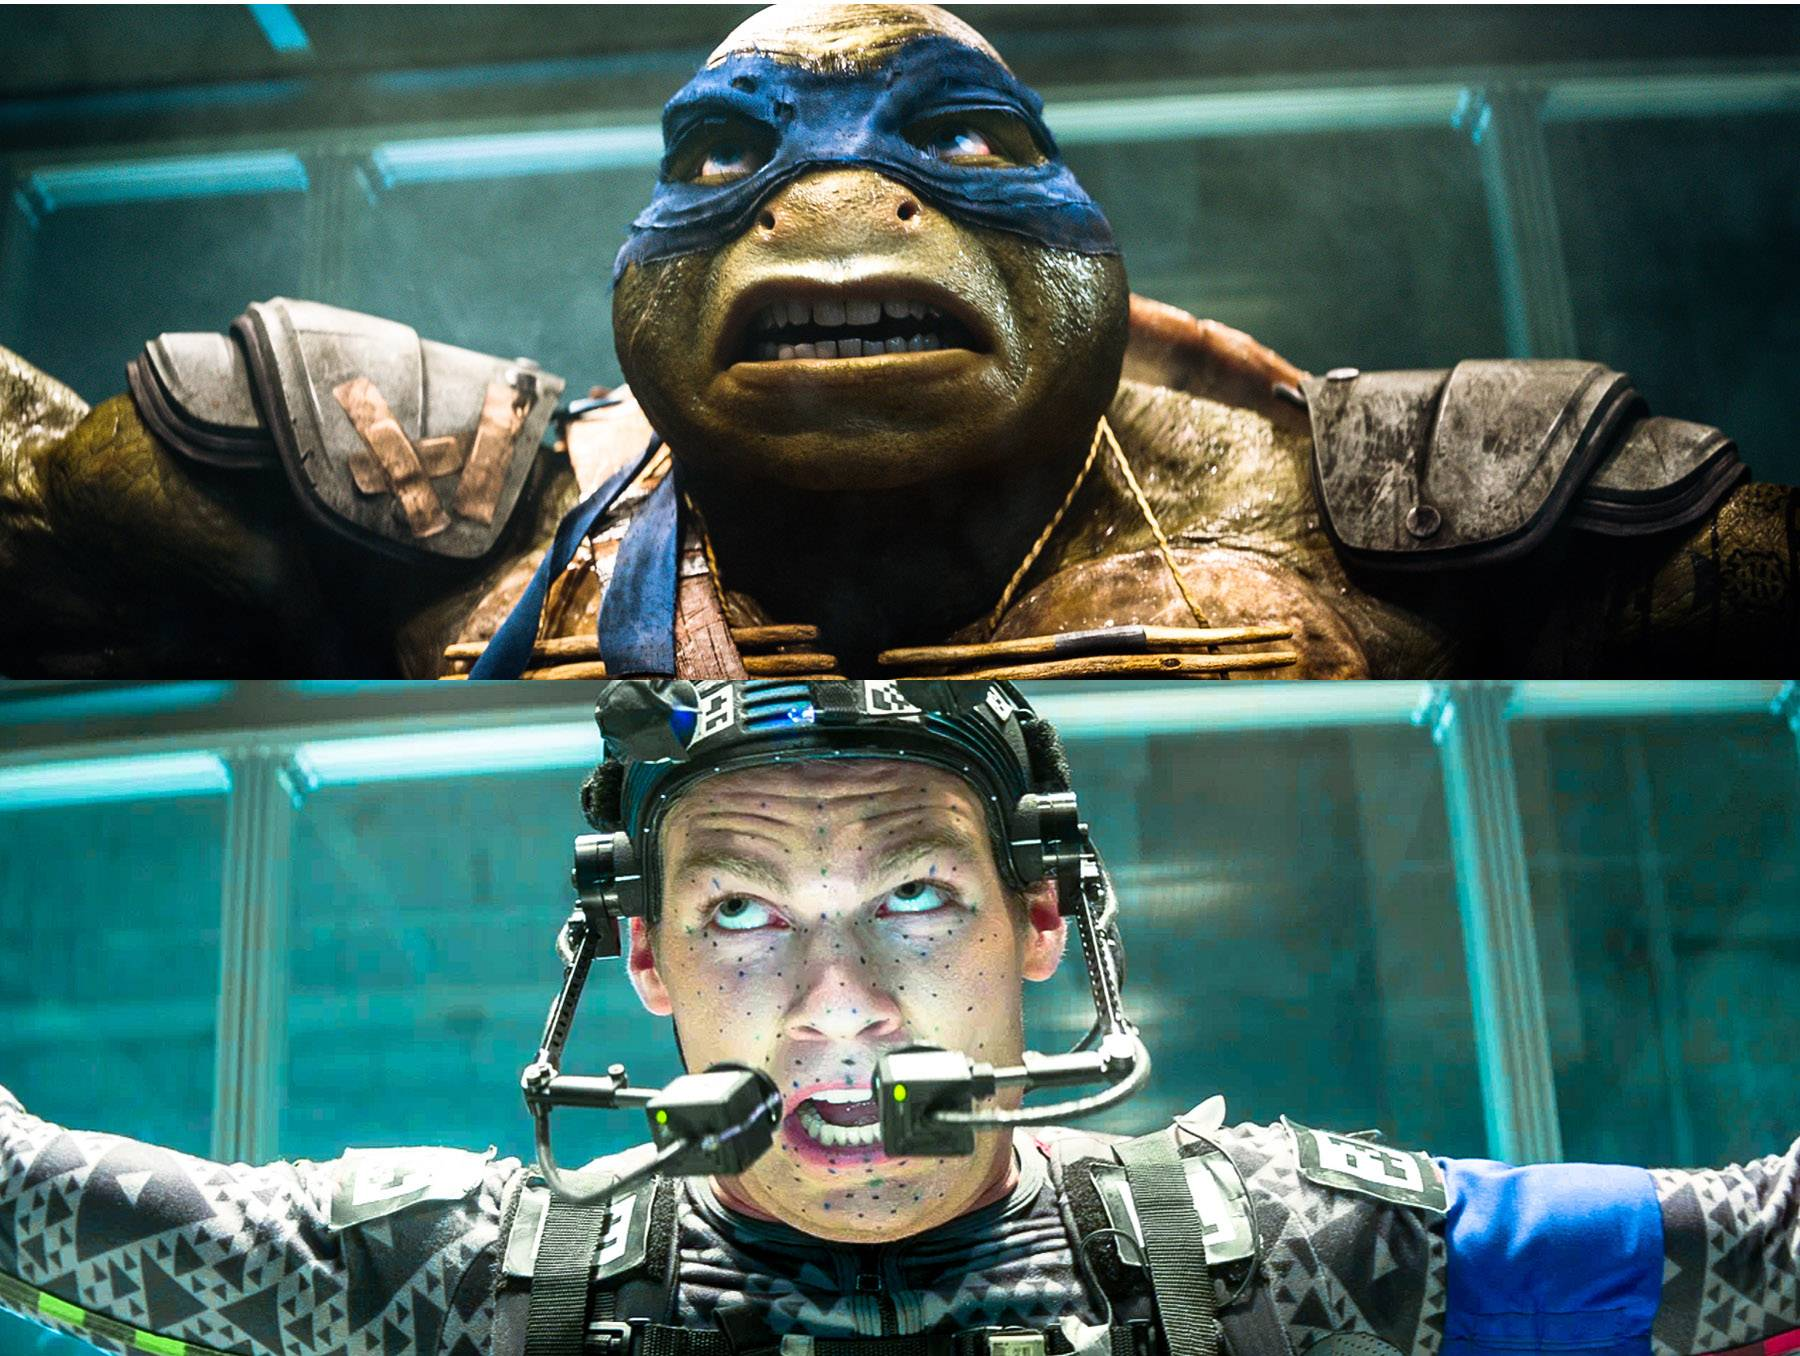 Former St. Charles resident shell-shocked by 'Teenage Mutant Ninja Turtles' role